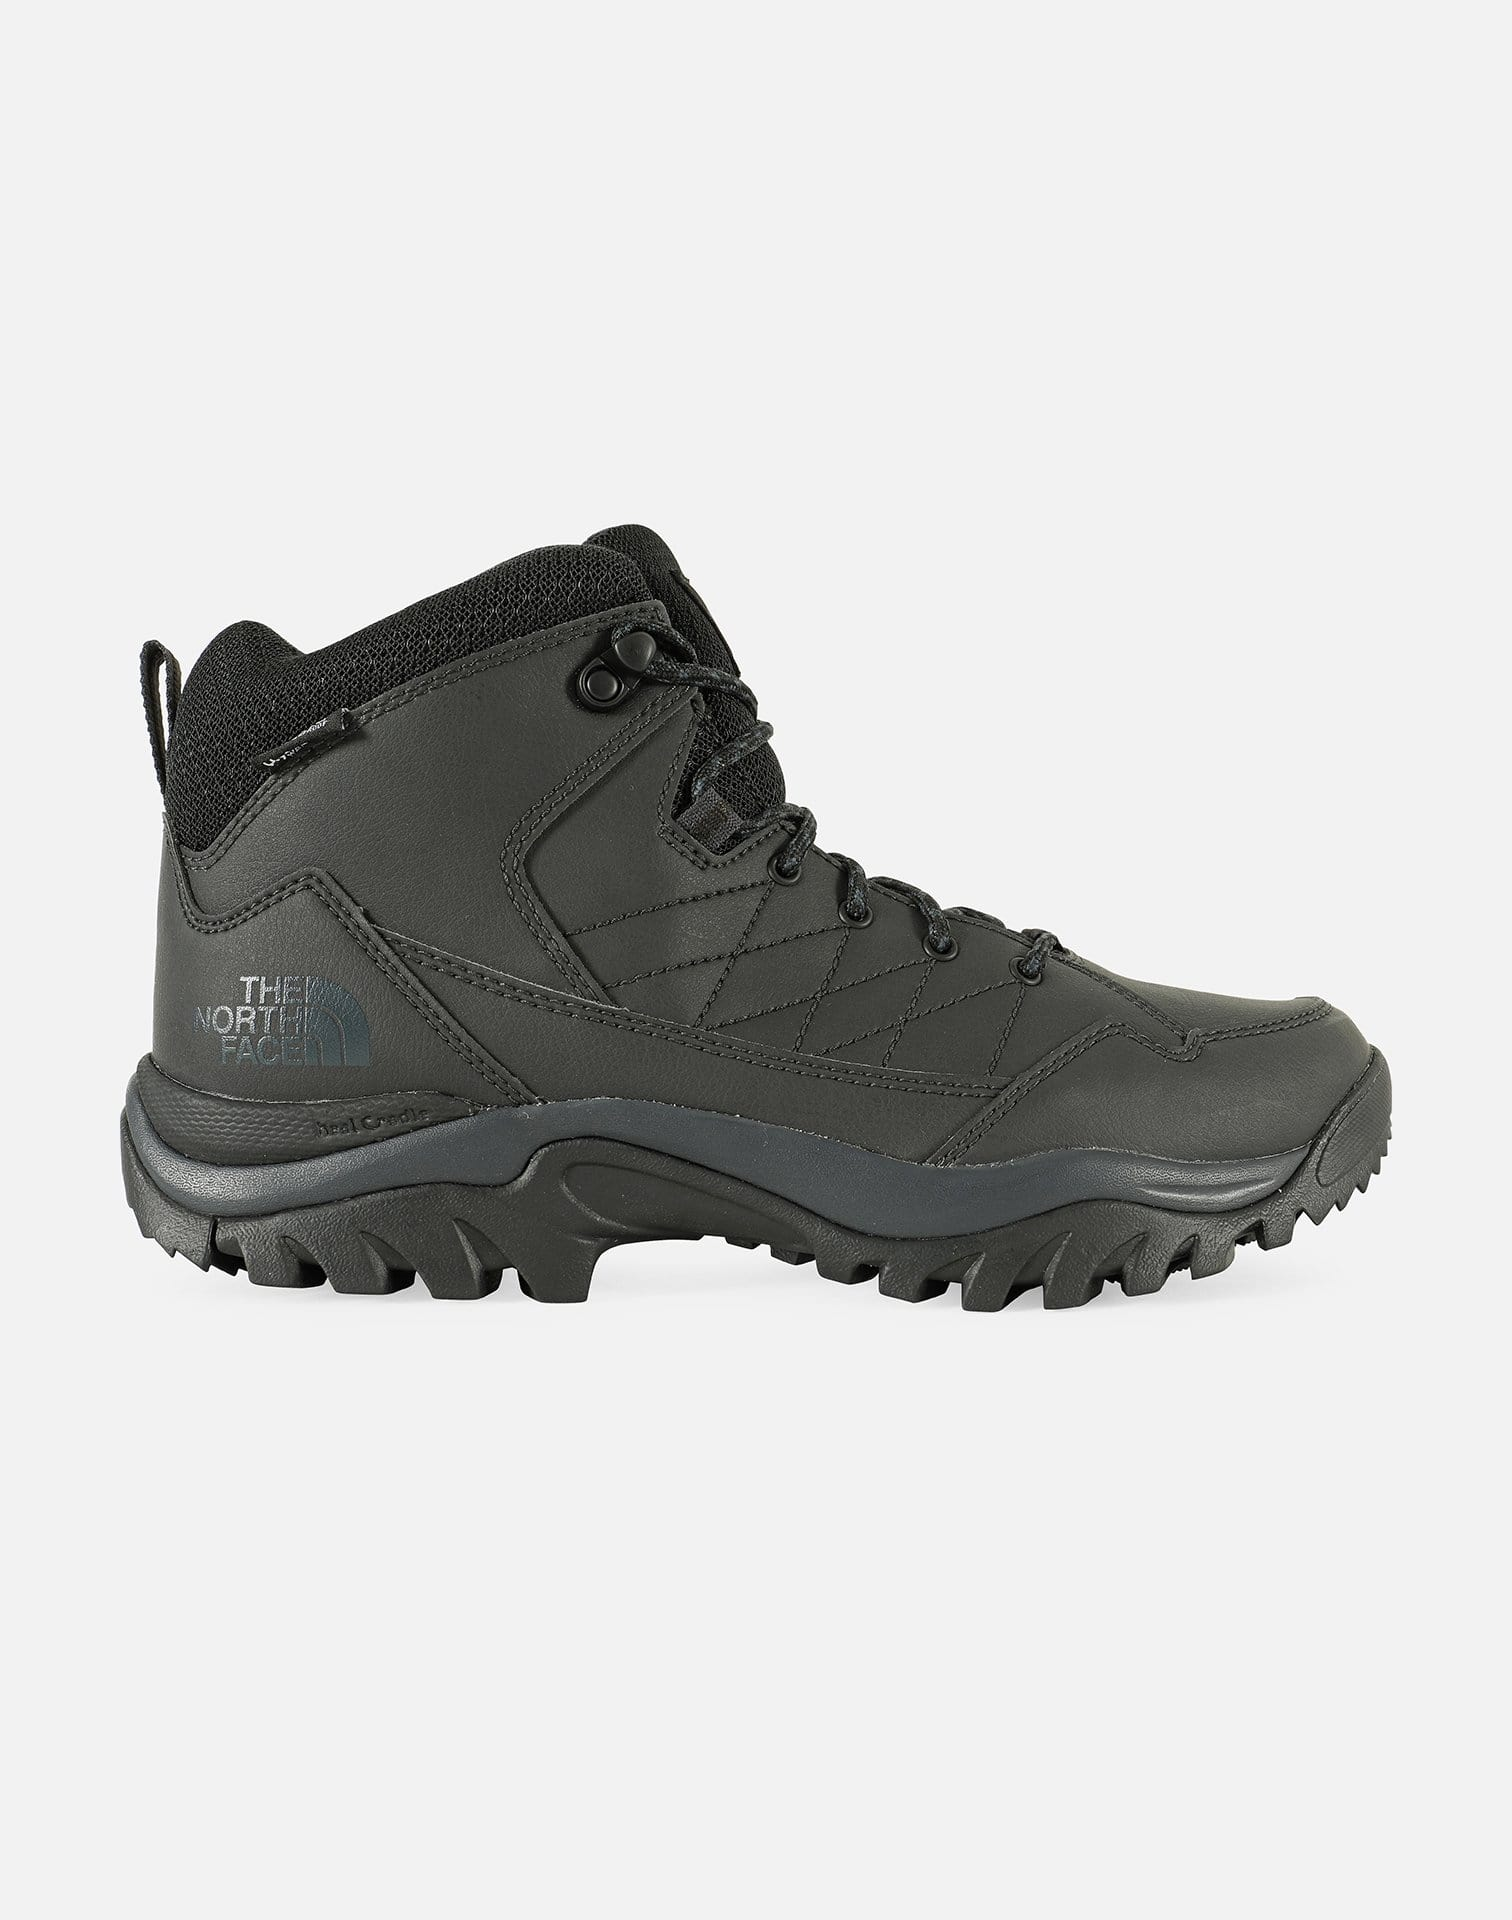 The North Face Men's Storm Strike 2 Waterproof Boots